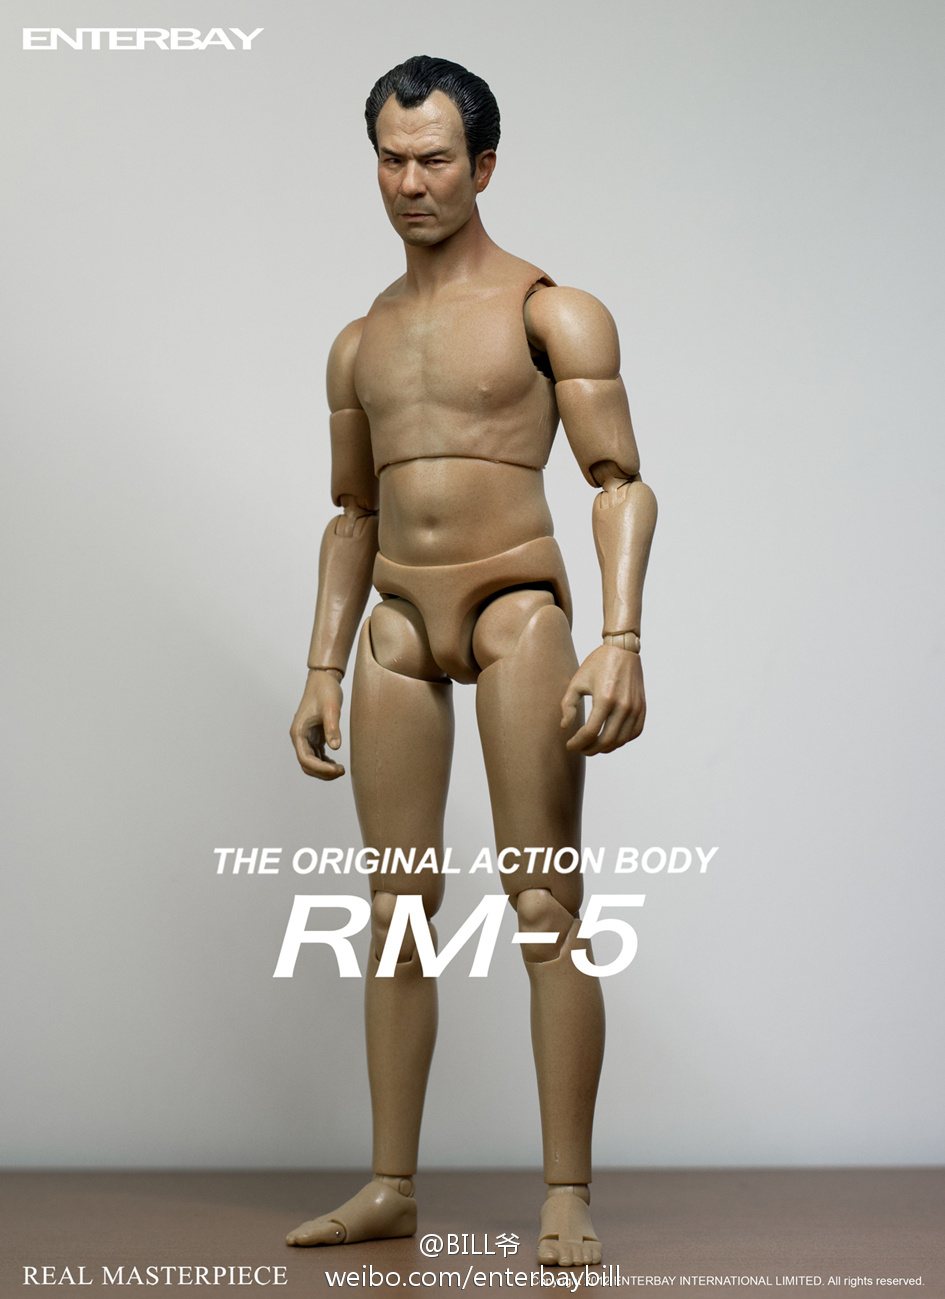 [Enterbay] Original Action Body - RM-5 With Style - 313 69464edegw1doyhl1oxw6j